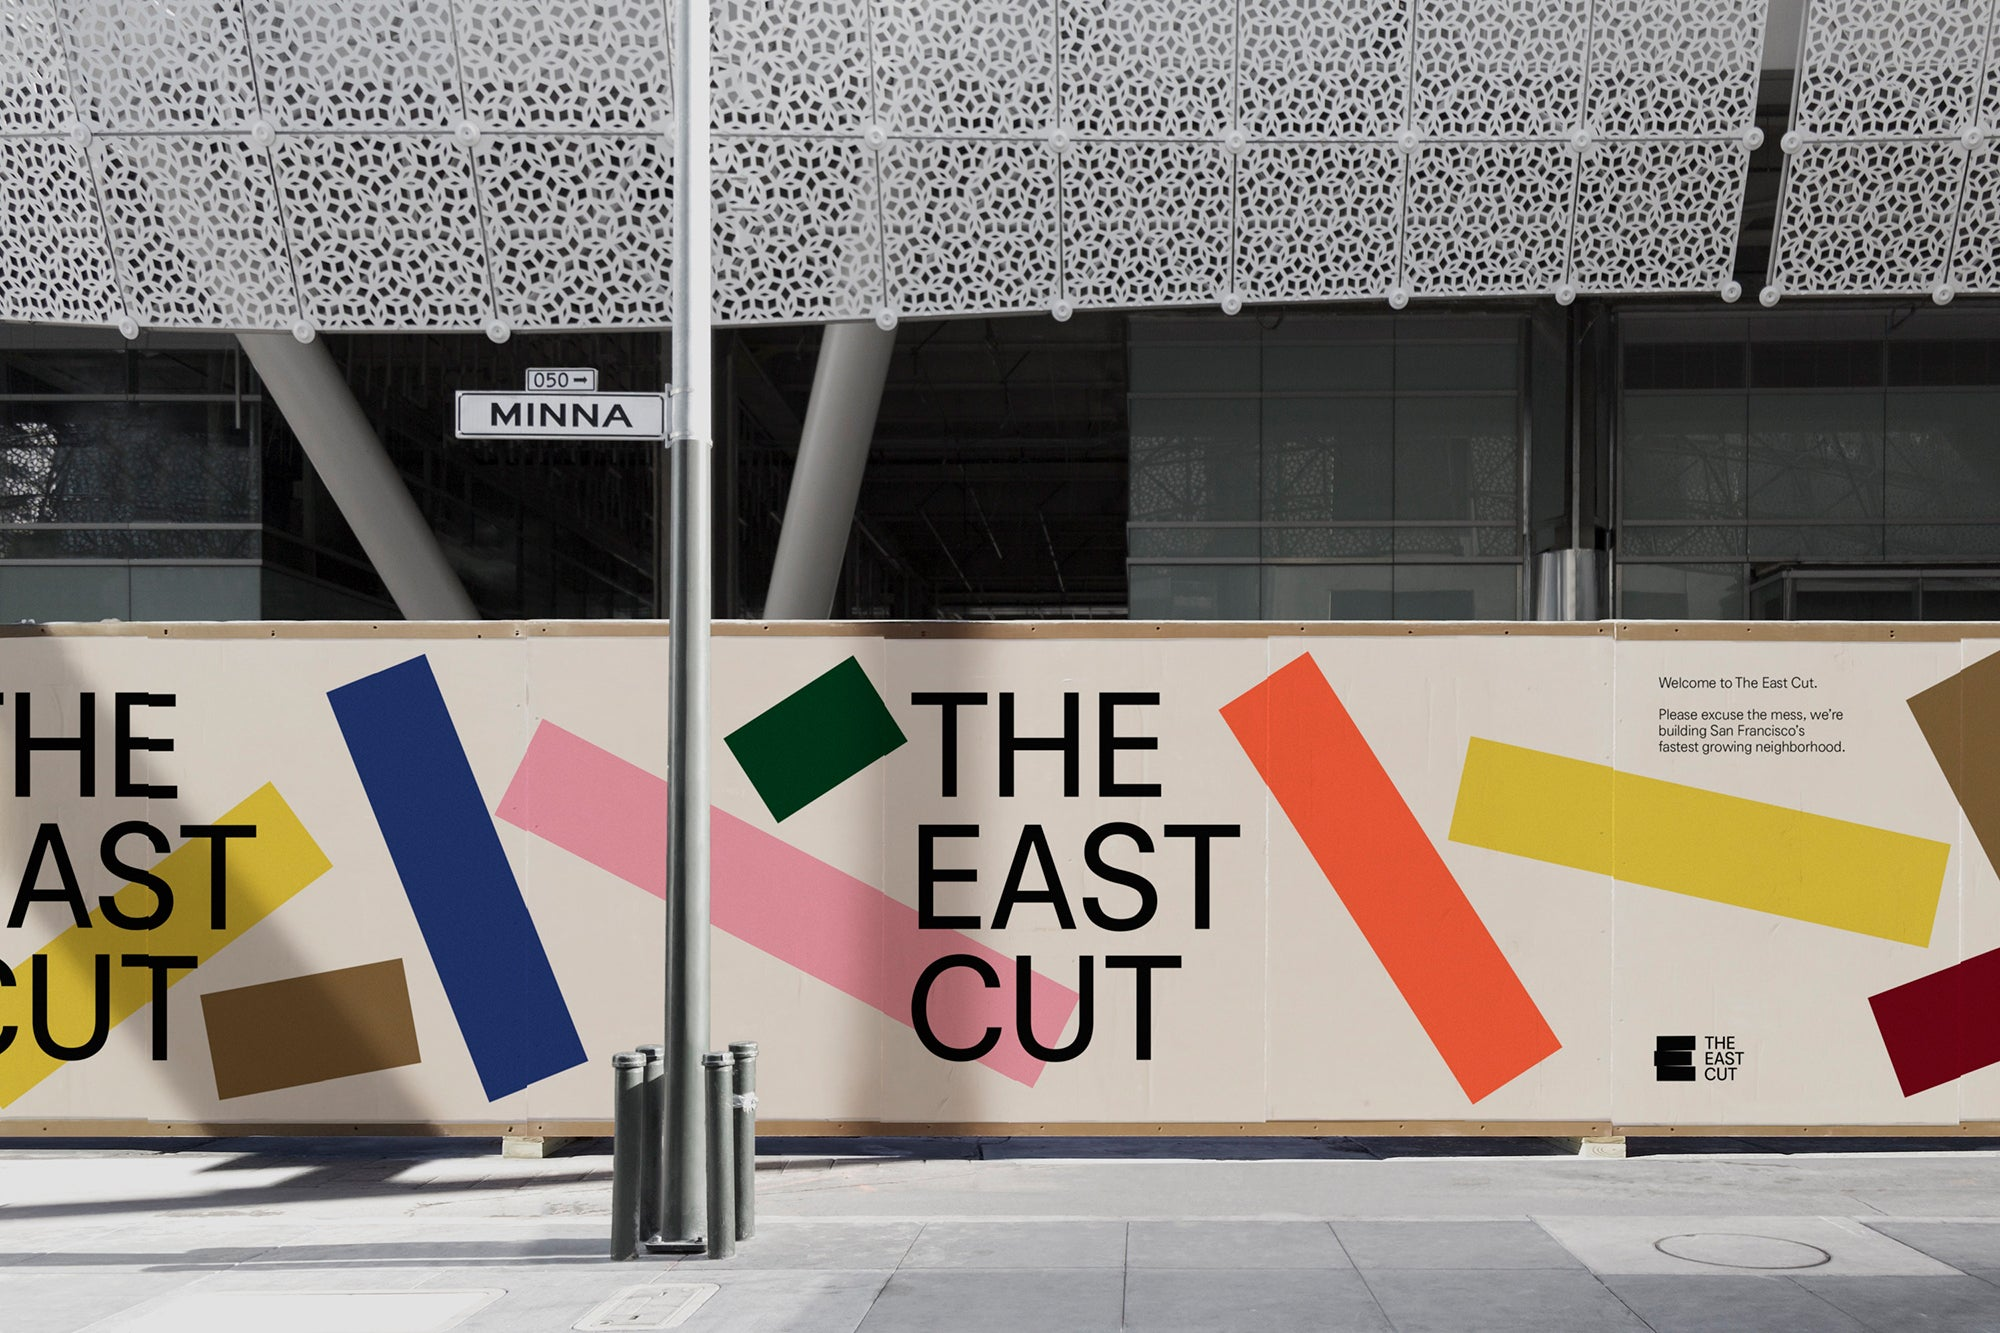 Collins: The East Cut